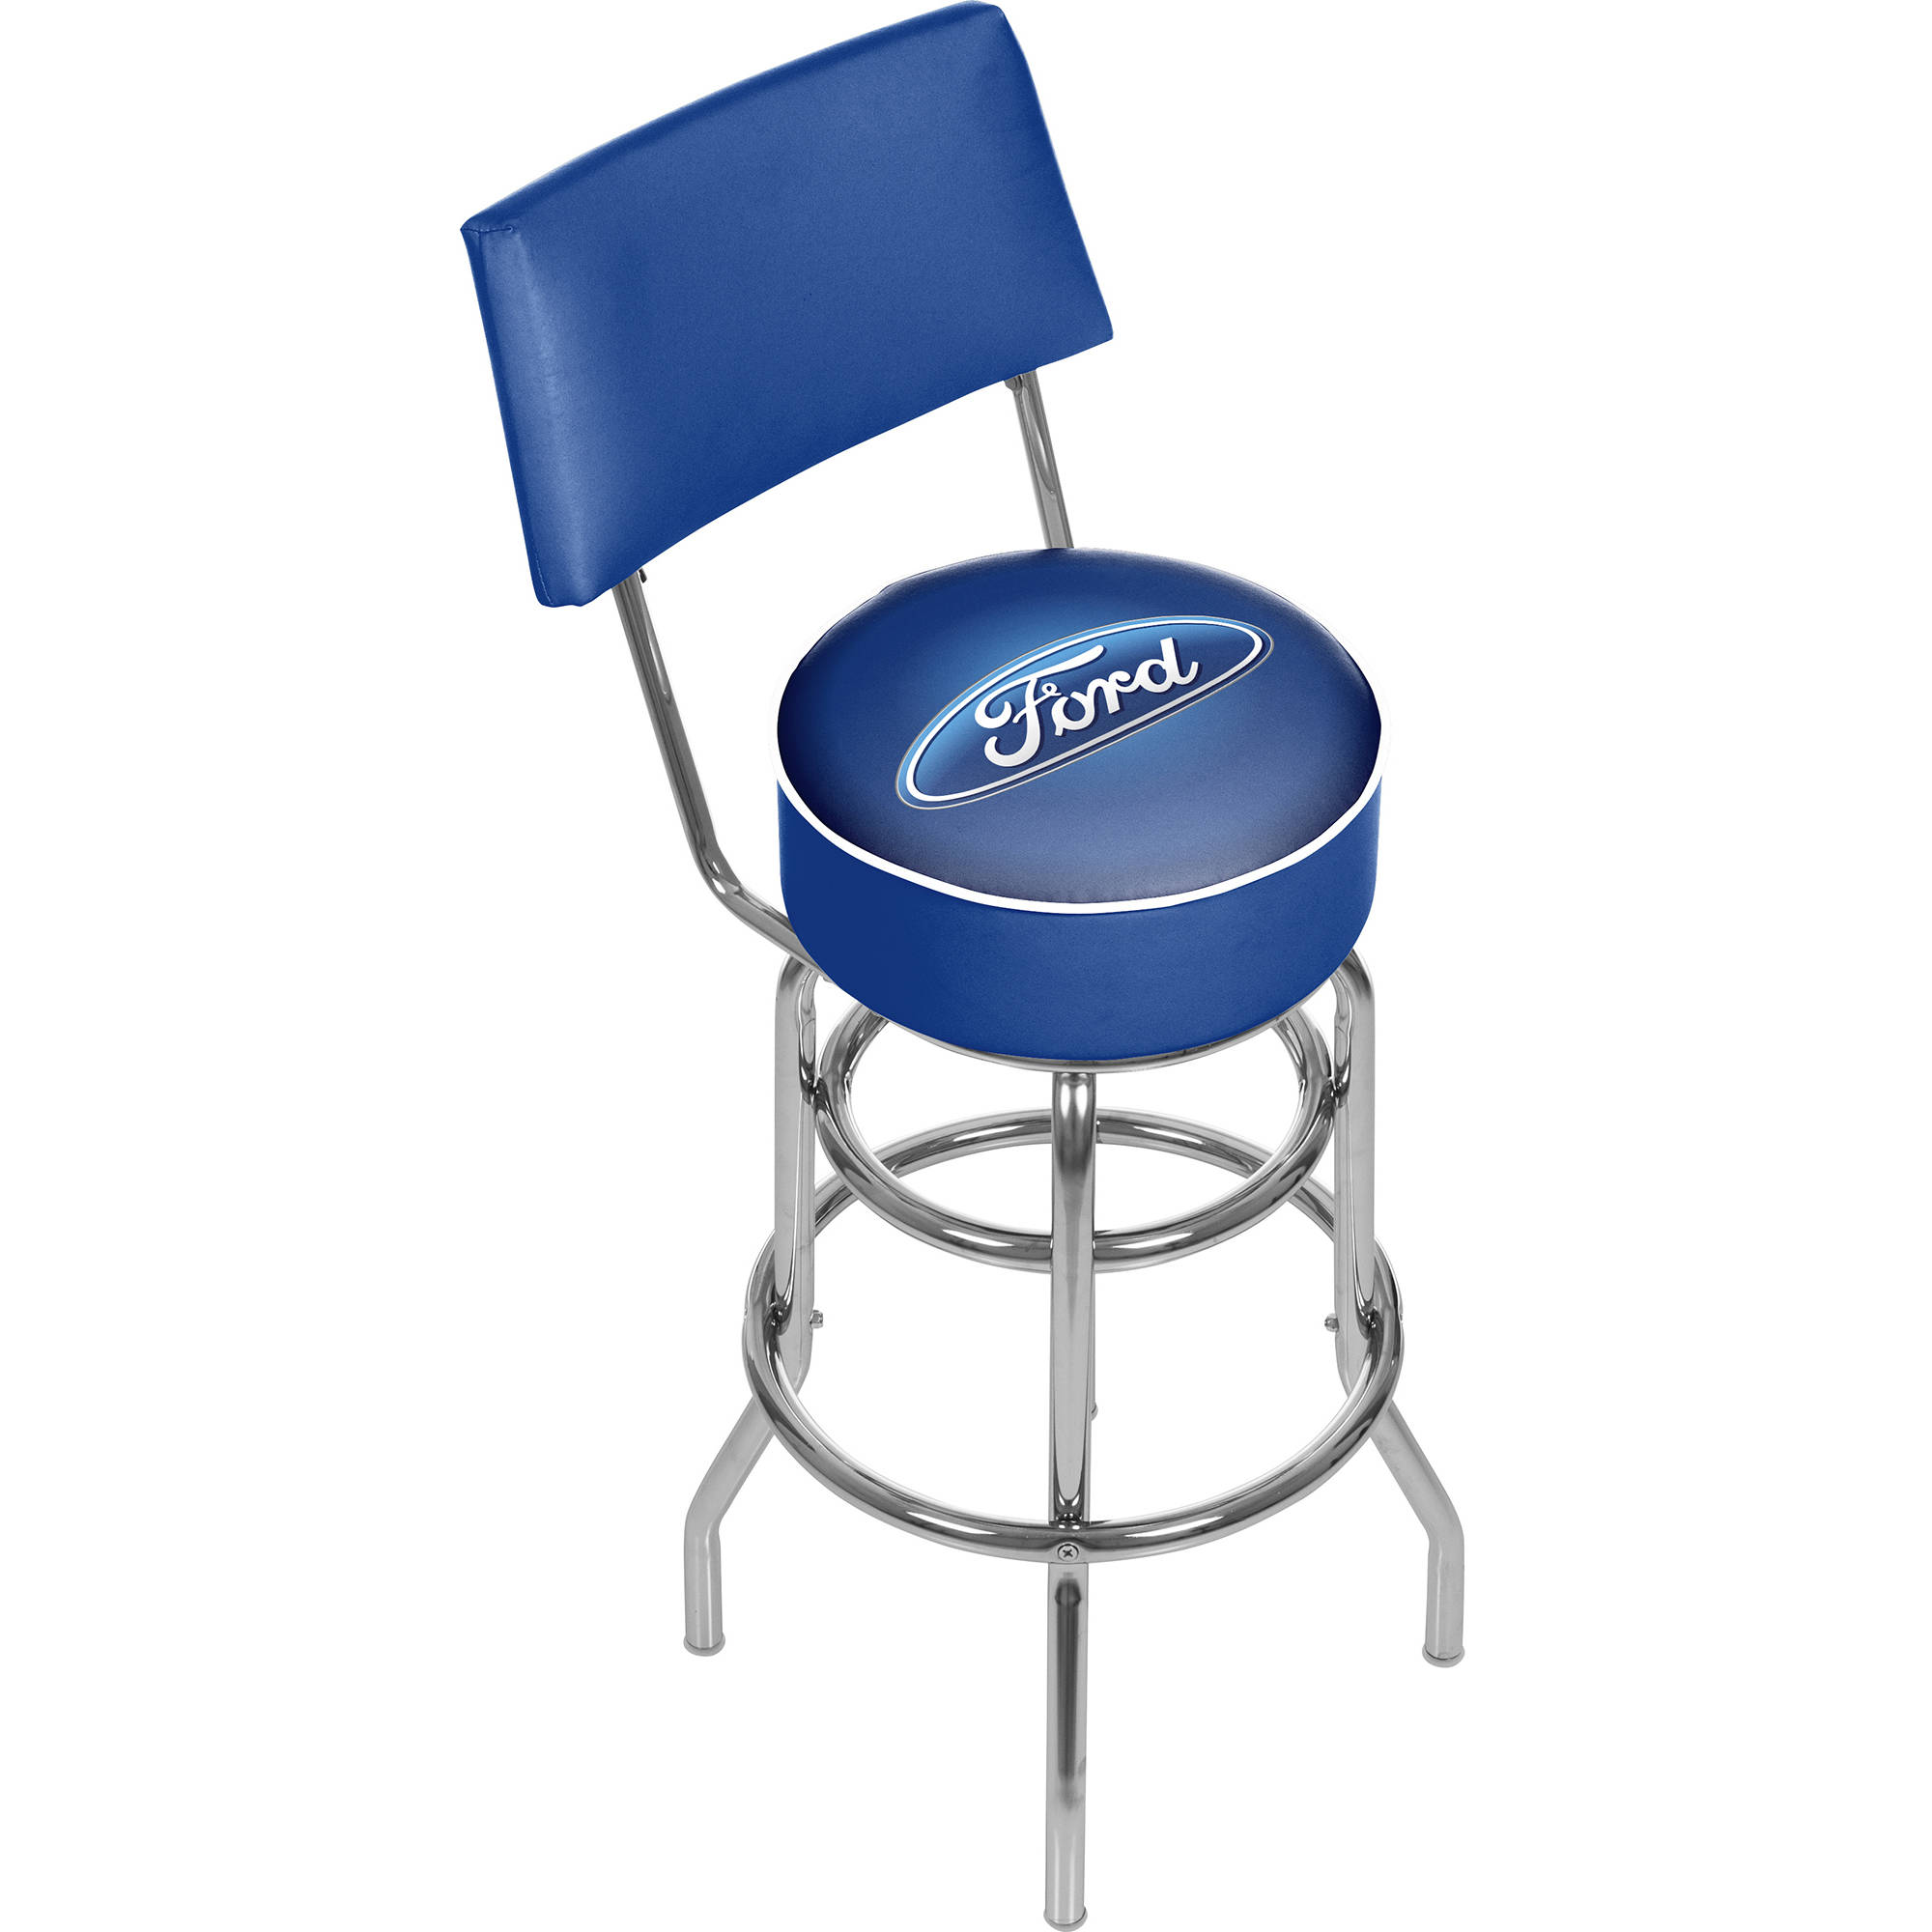 Ford Swivel Bar Stool with Back, Ford Oval